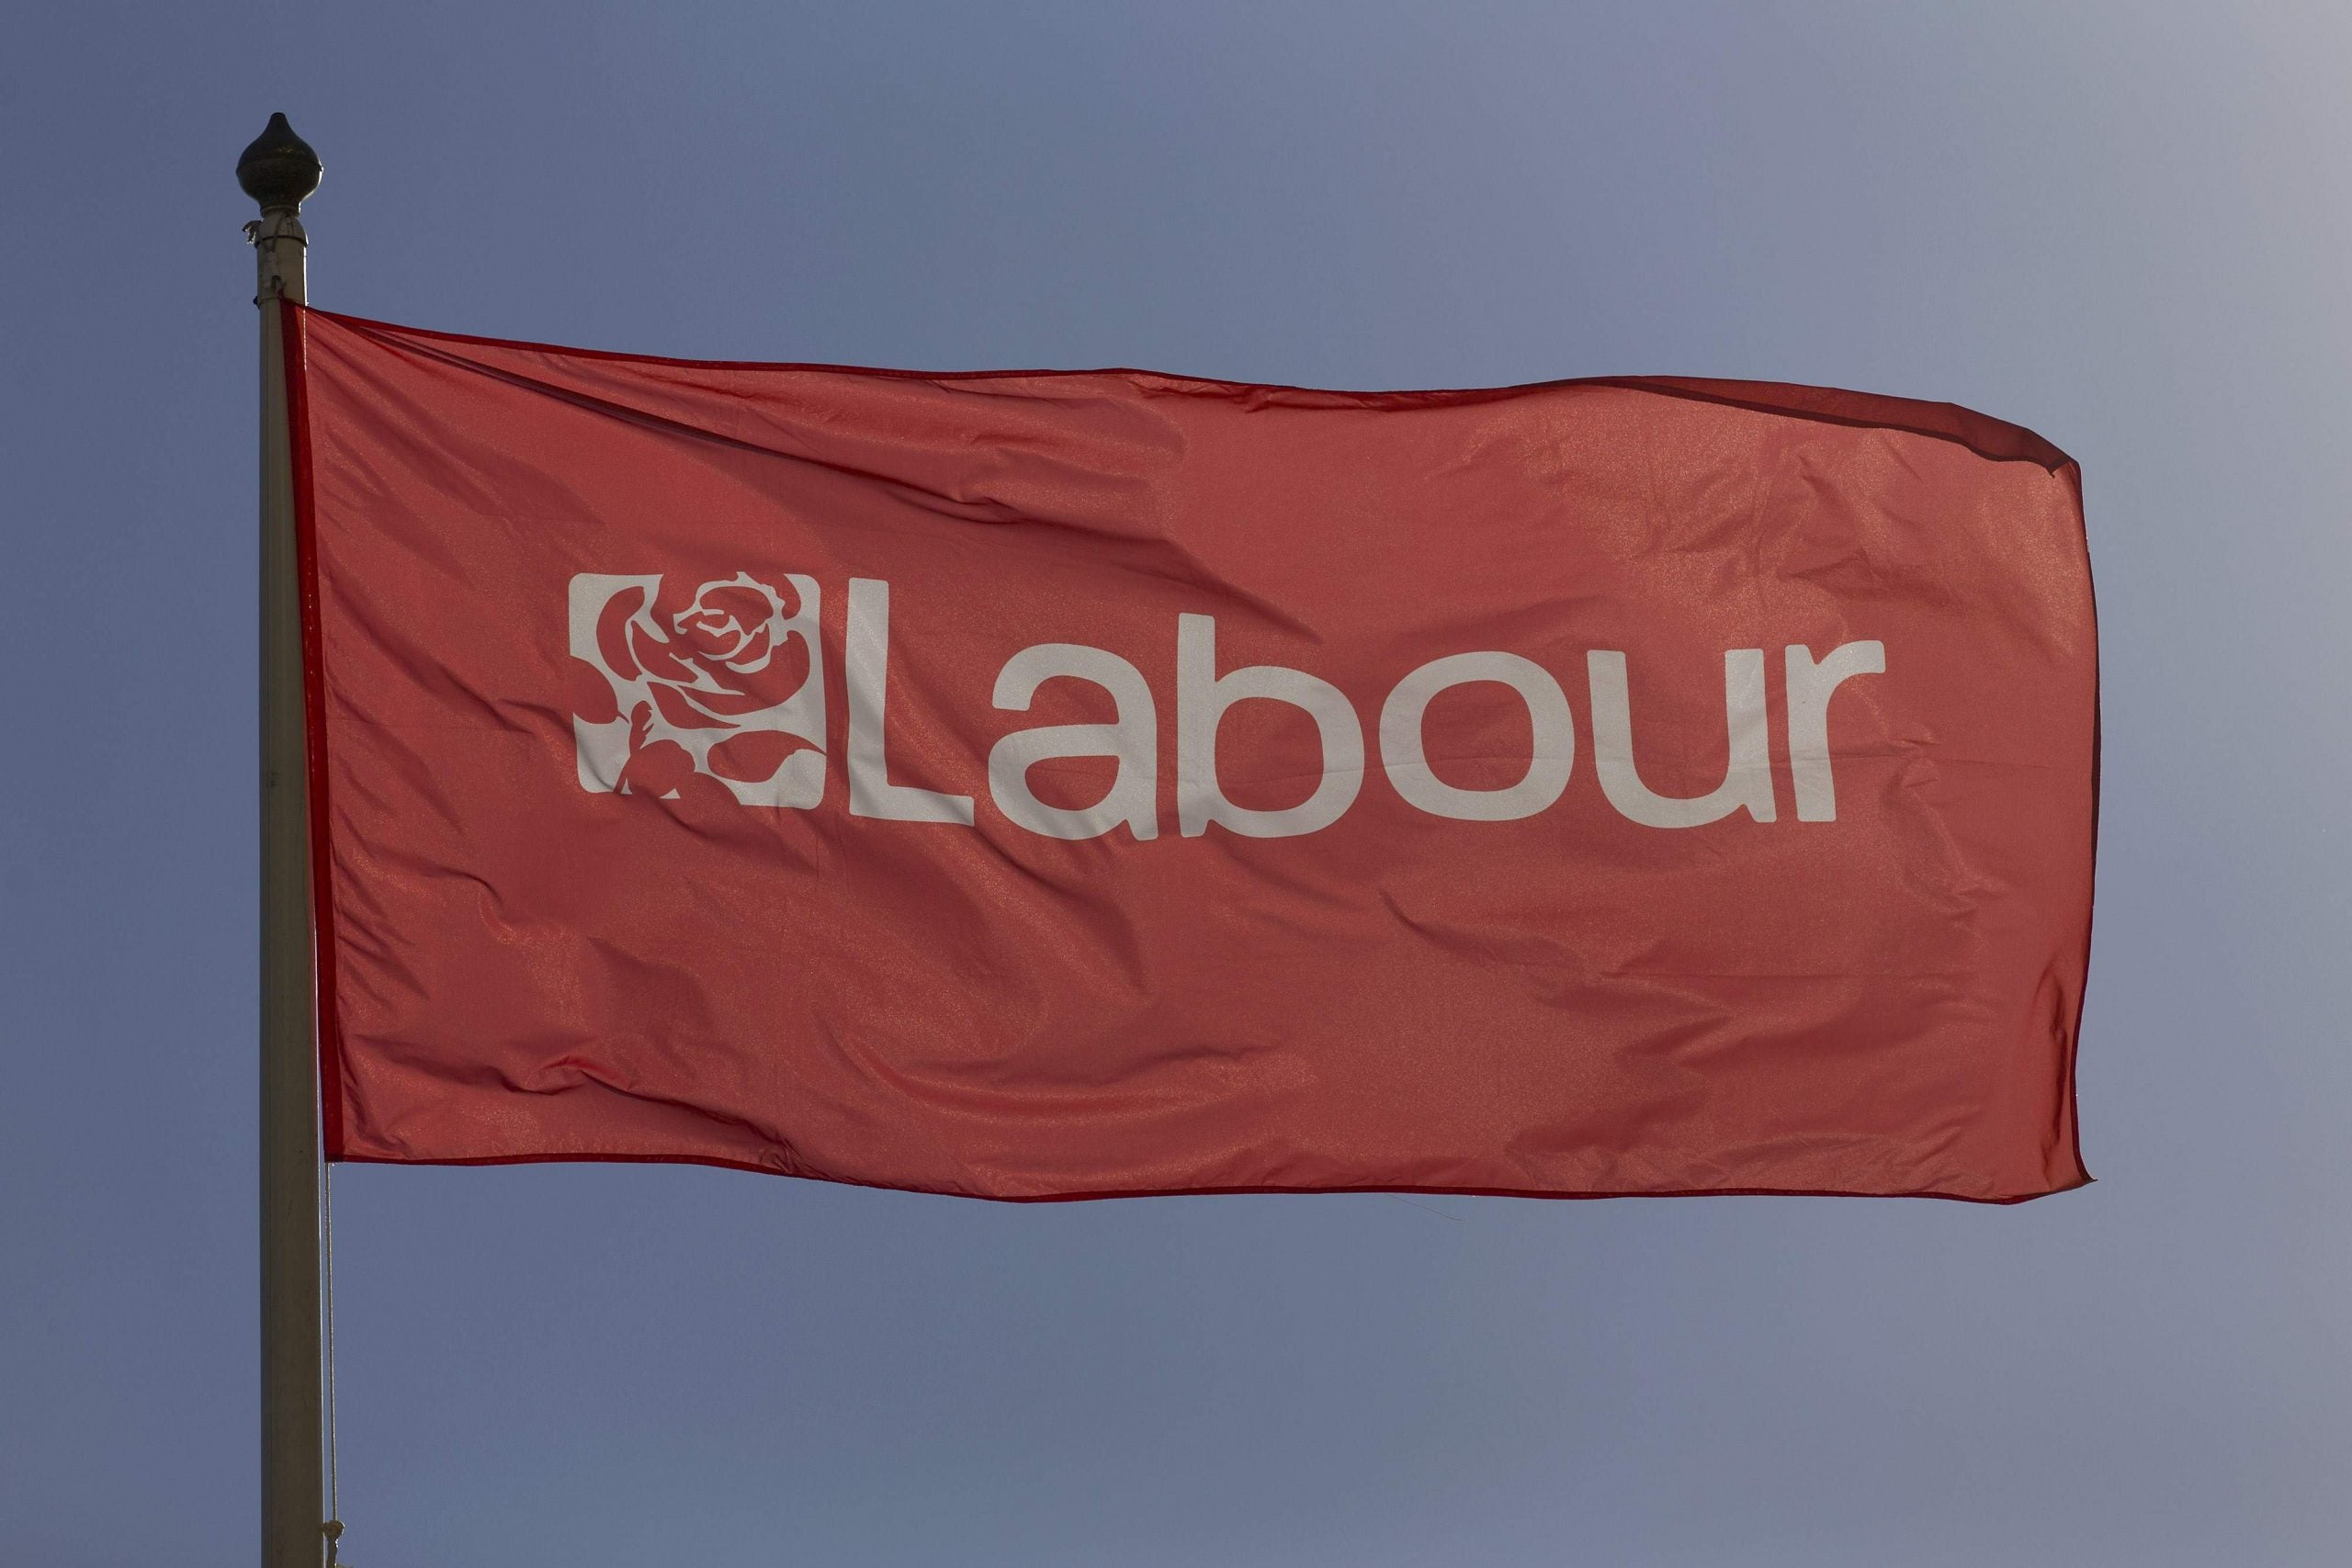 Jamie Reed - you're wrong about me, about Labour, and about the future